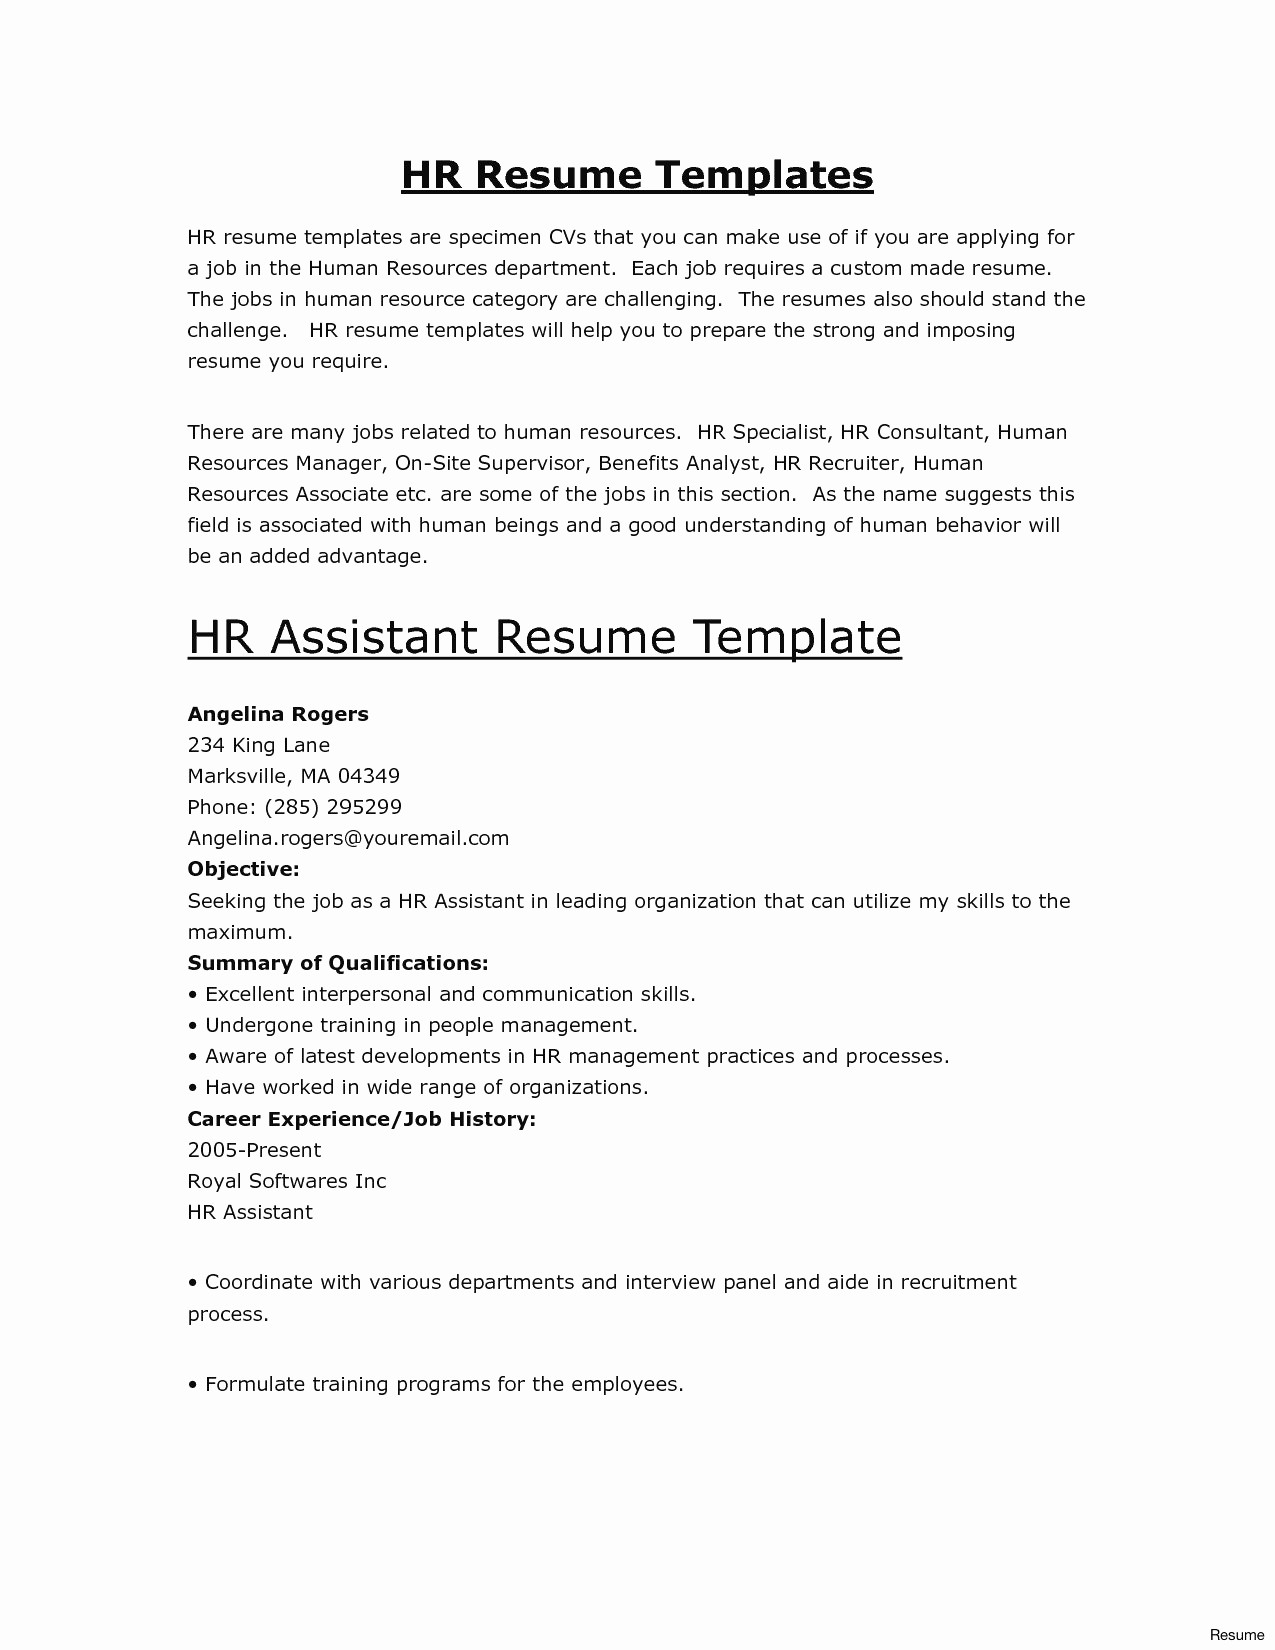 Employment Verification Letter Template Word - Inspirational Employment Verification Letter Template